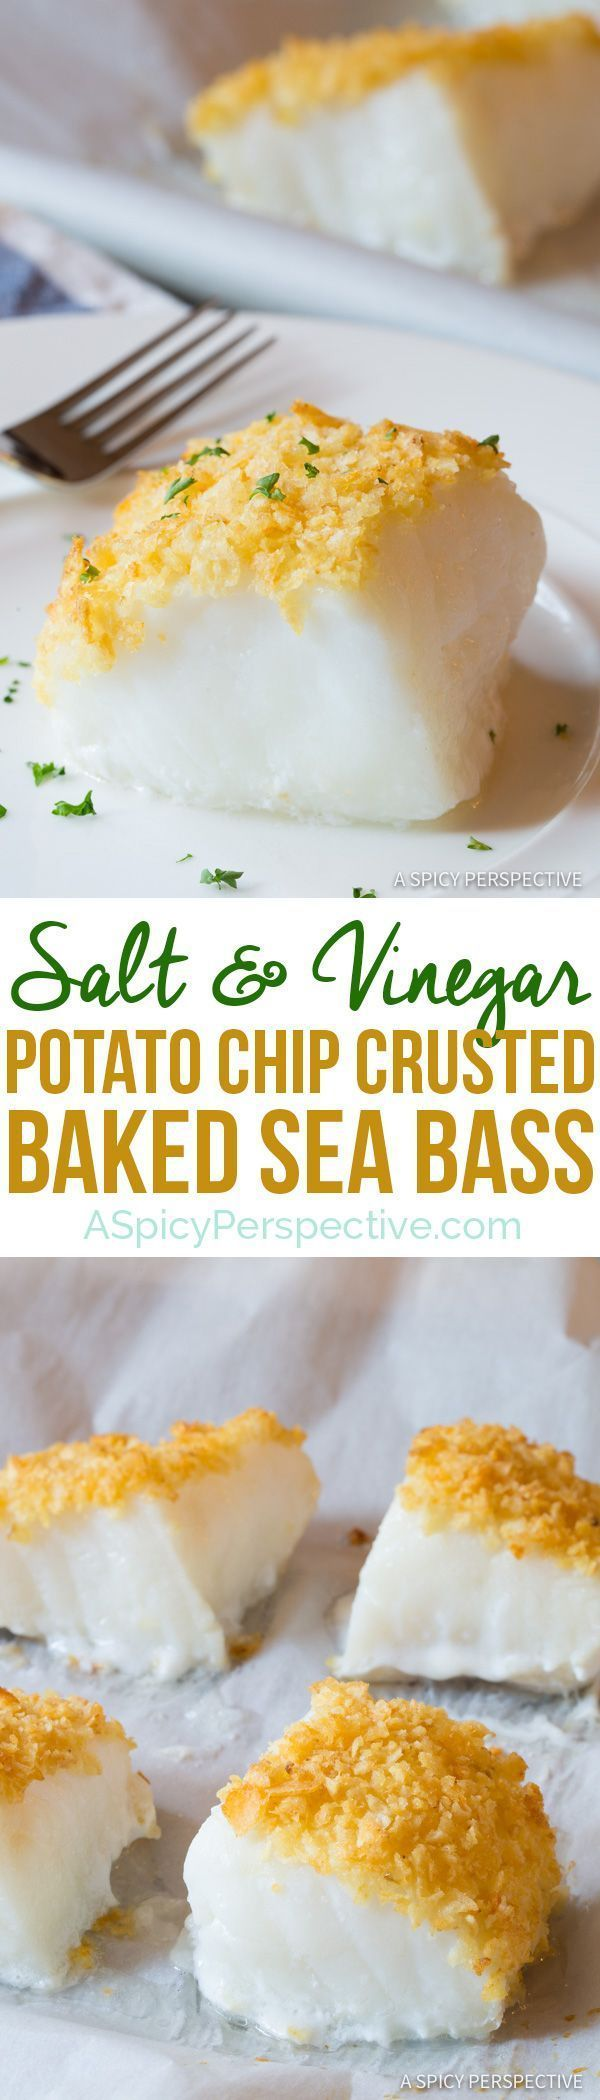 3-Ingredient Salt and Vinegar Potato Chip Crusted Baked Sea Bass Recipe (Healthy Fish and Chips!) | http://ASpicyPerspective.com